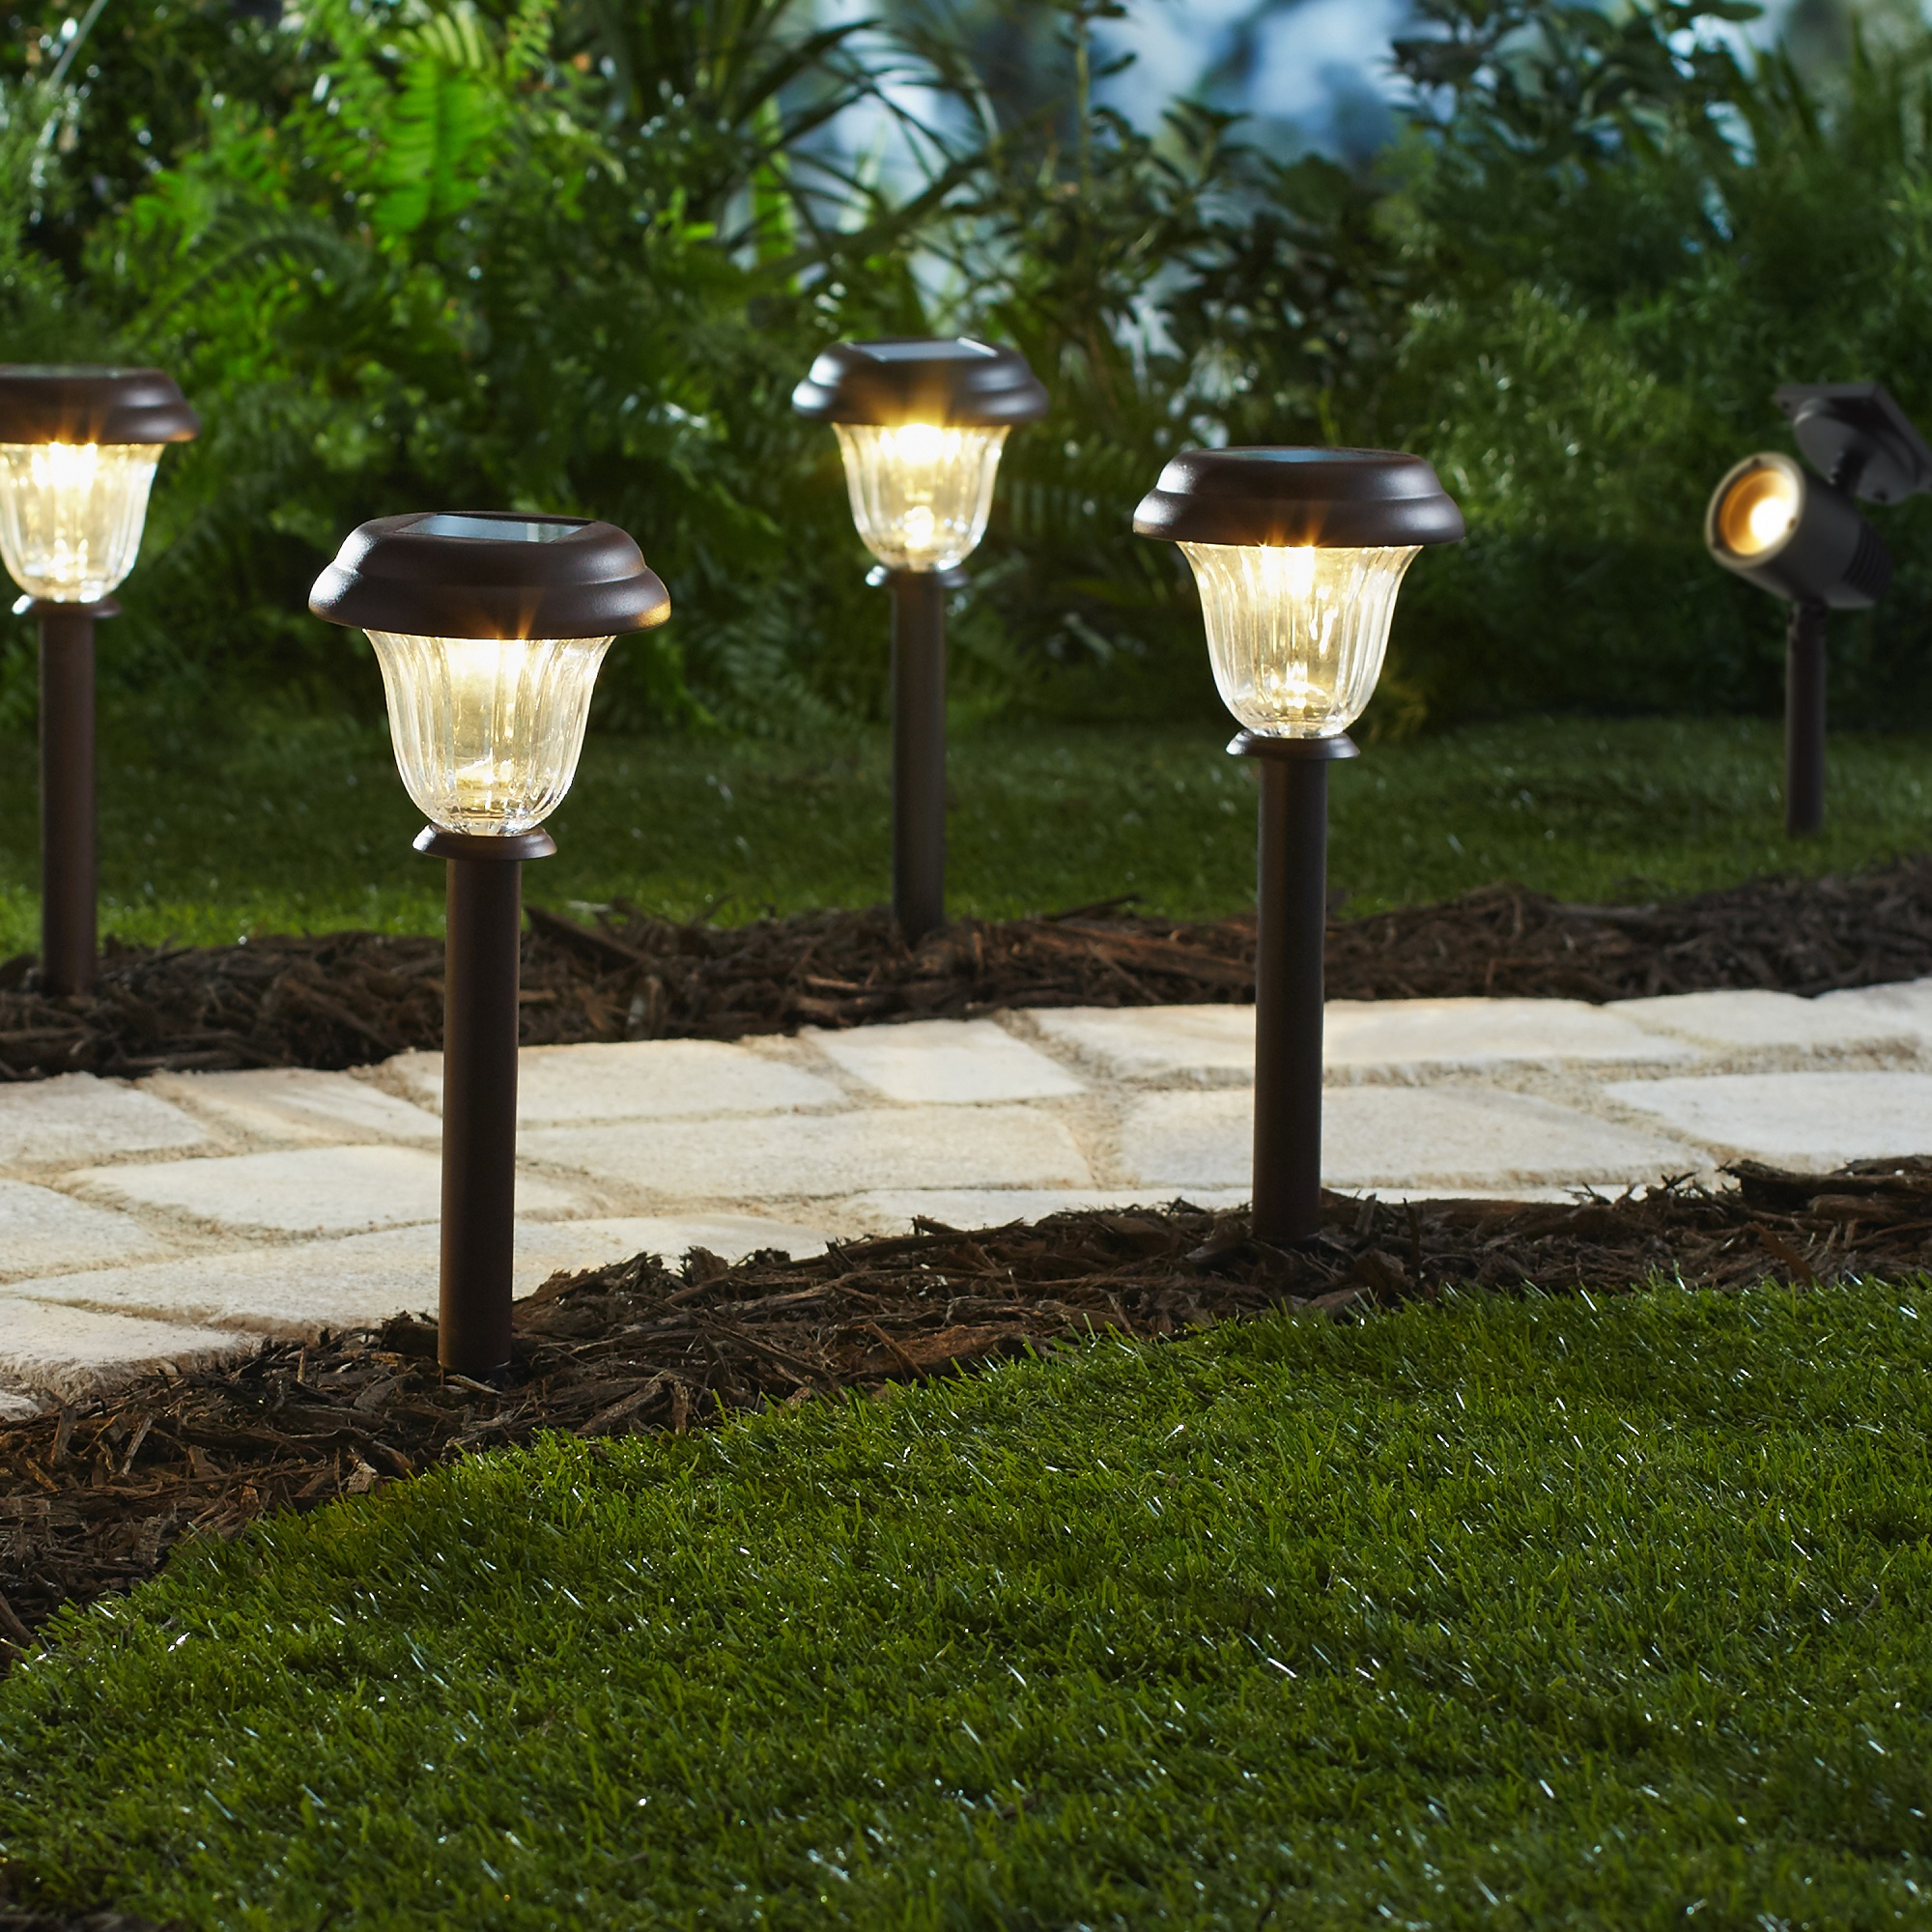 Mainstays 8 Piece Solar Ed Led Pathway Lighting Set